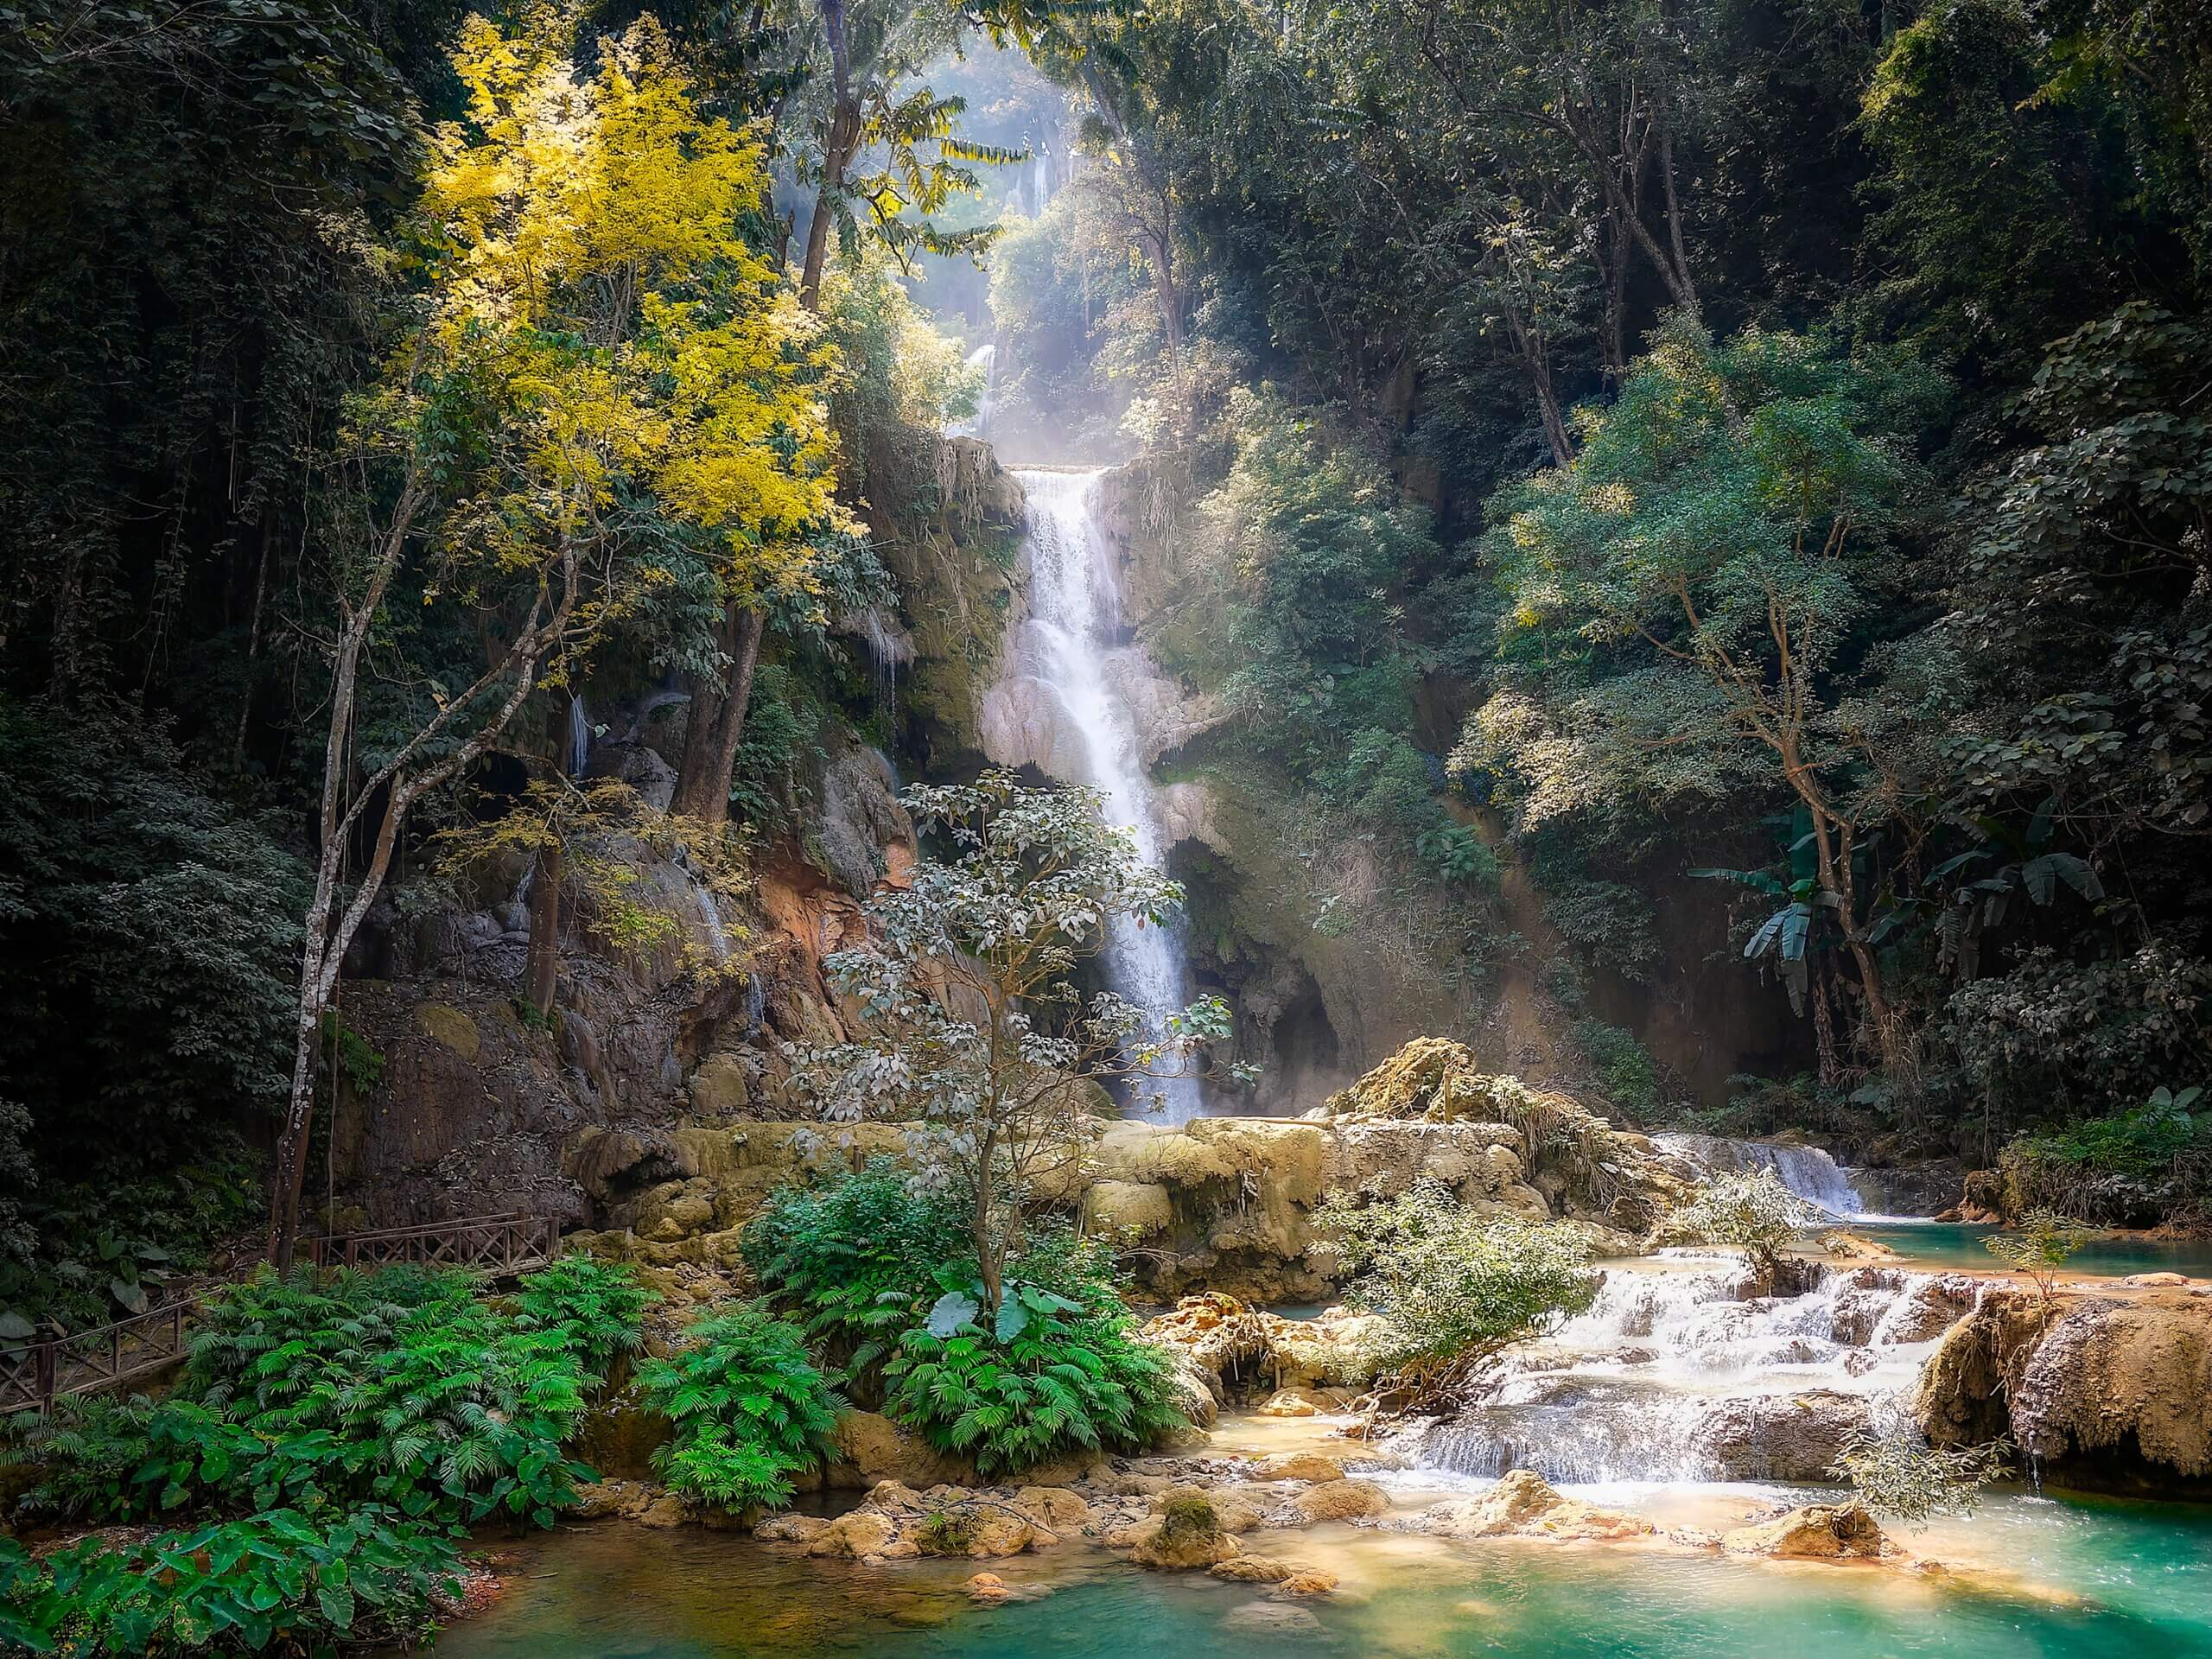 tropical forest Laos asia waterfall oasis paradise trees rocks boulders nature outdoors explore travel